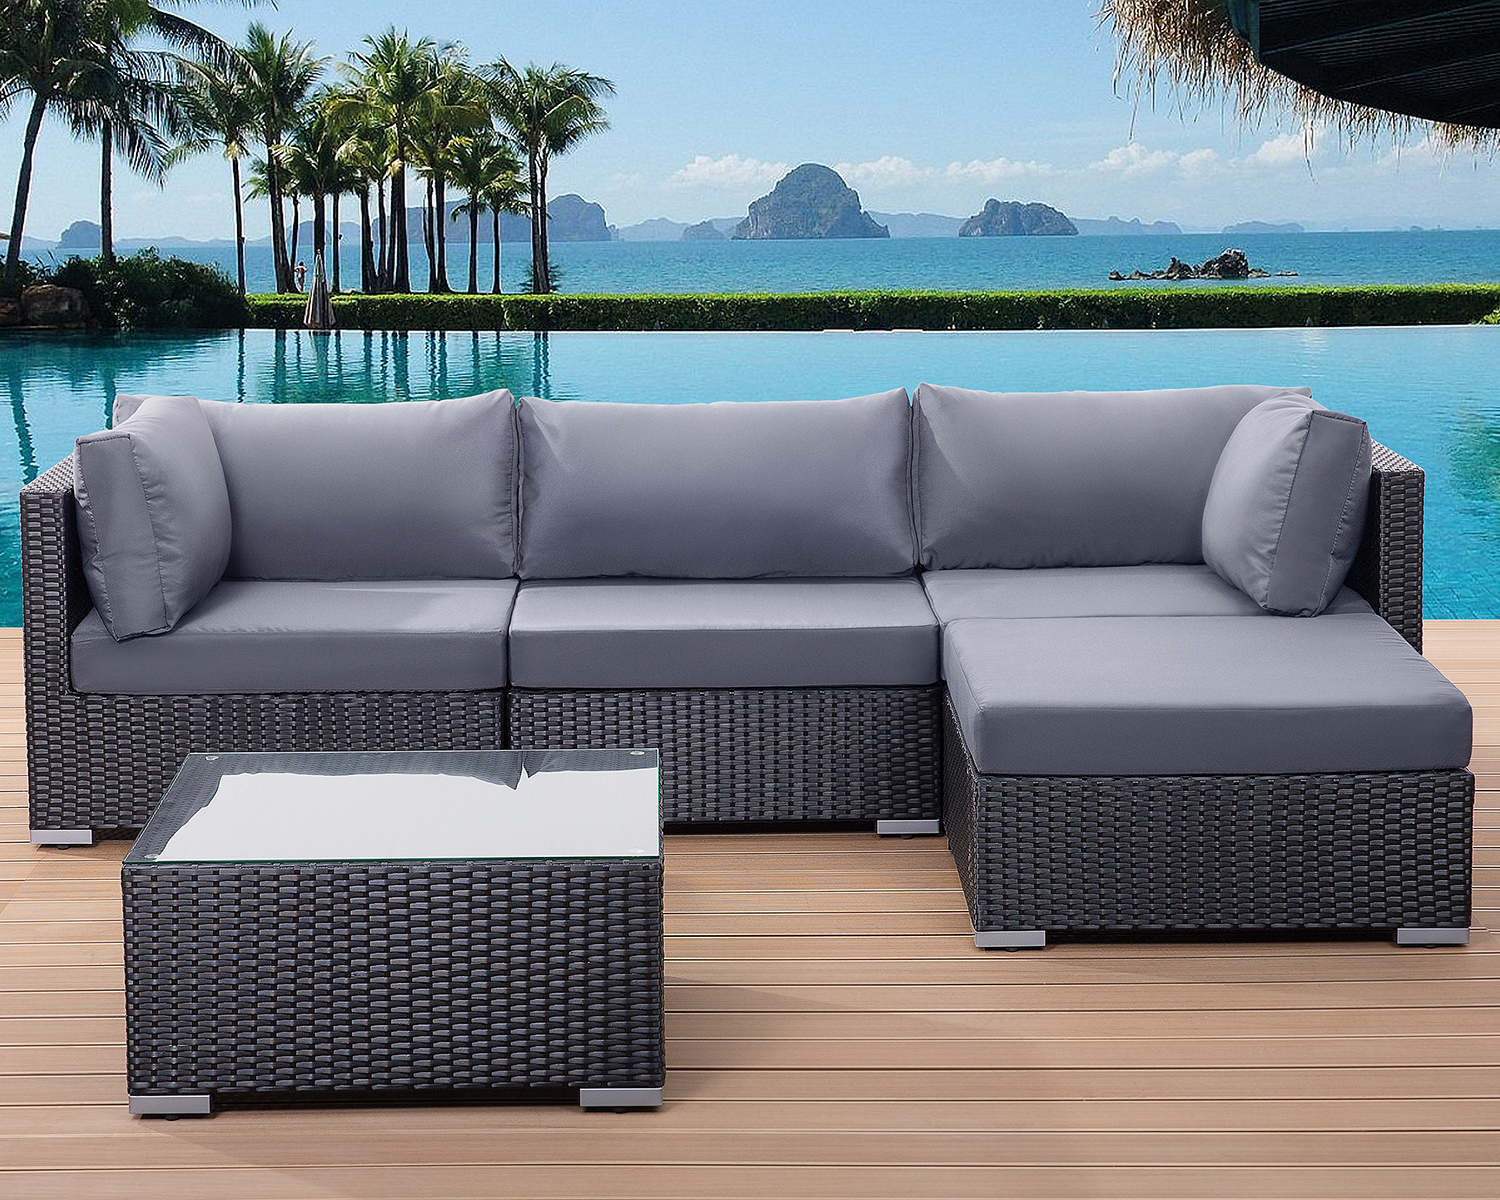 patio settee garden poly rattan lounge sofa set black grey cushions ebay. Black Bedroom Furniture Sets. Home Design Ideas